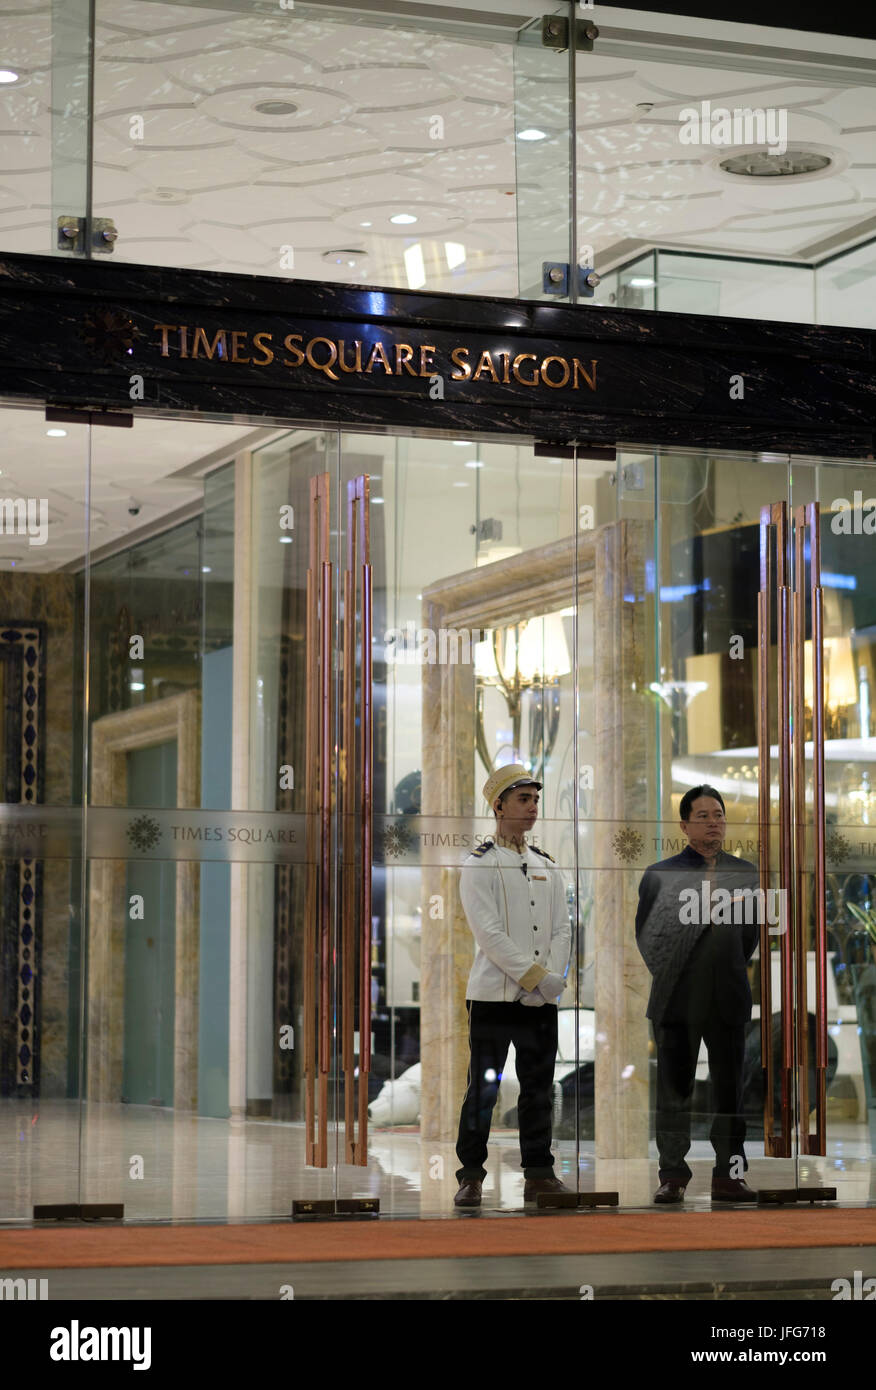 Bellboy in uniform inside the Times Square Saigon hotel in Ho Chi Minh City, Vietnam, Asia - Stock Image